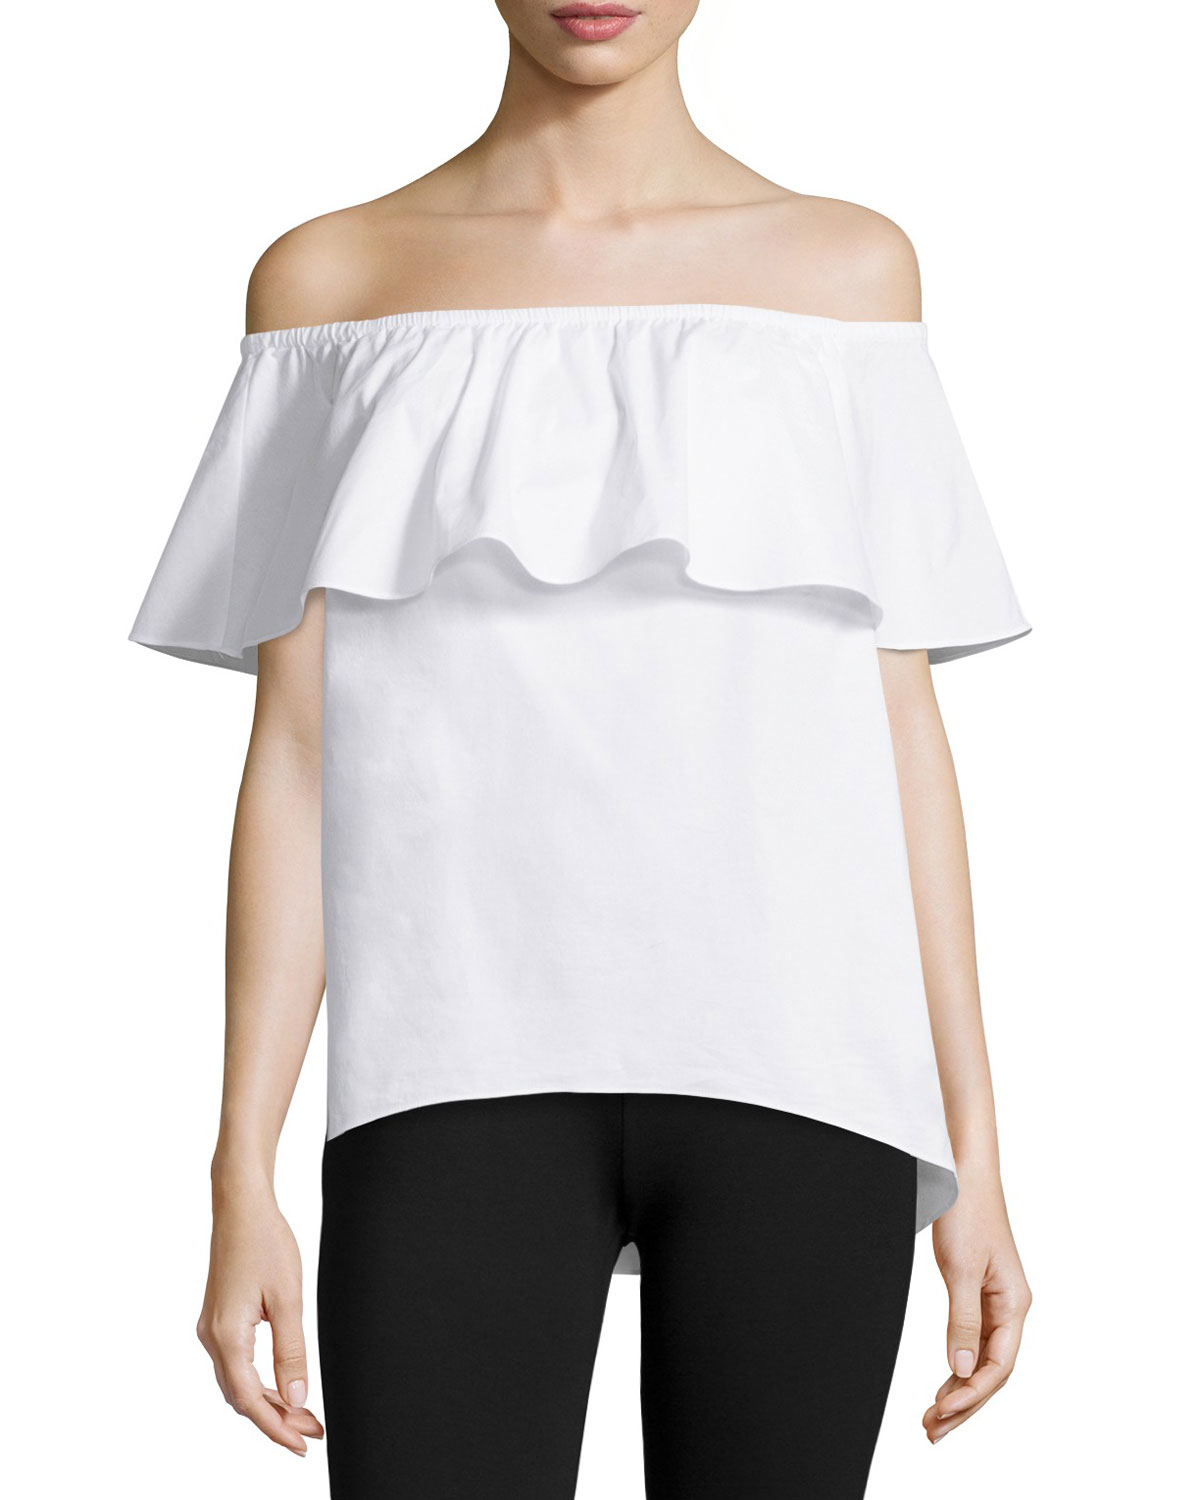 030ea054b1649 Lyst - MICHAEL Michael Kors Off-the-shoulder Ruffle Blouse in White